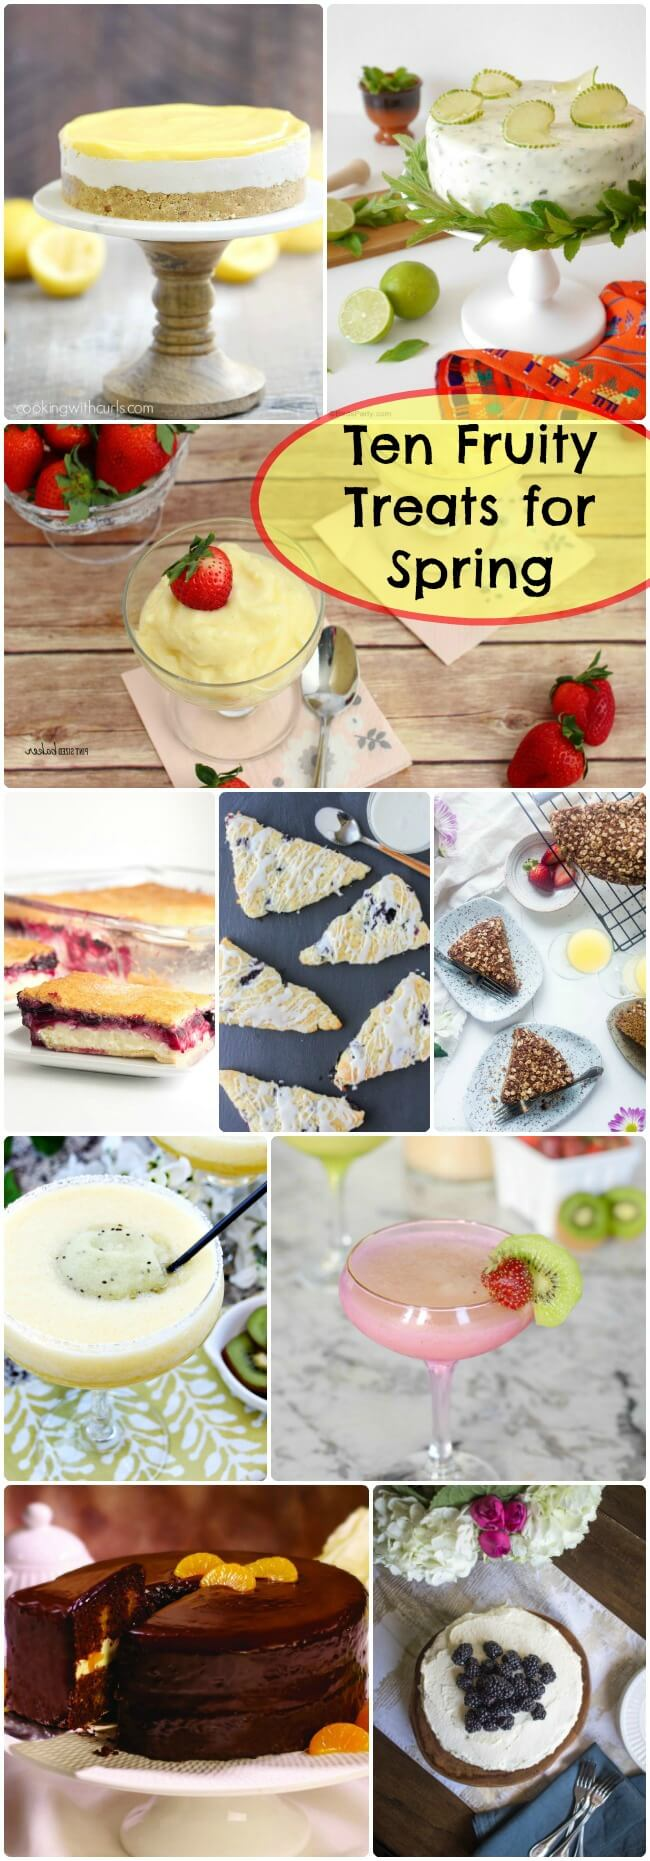 Spring time is all about baking with fresh fruits. Enjoy these Ten Fruity Treats for Spring Baking.